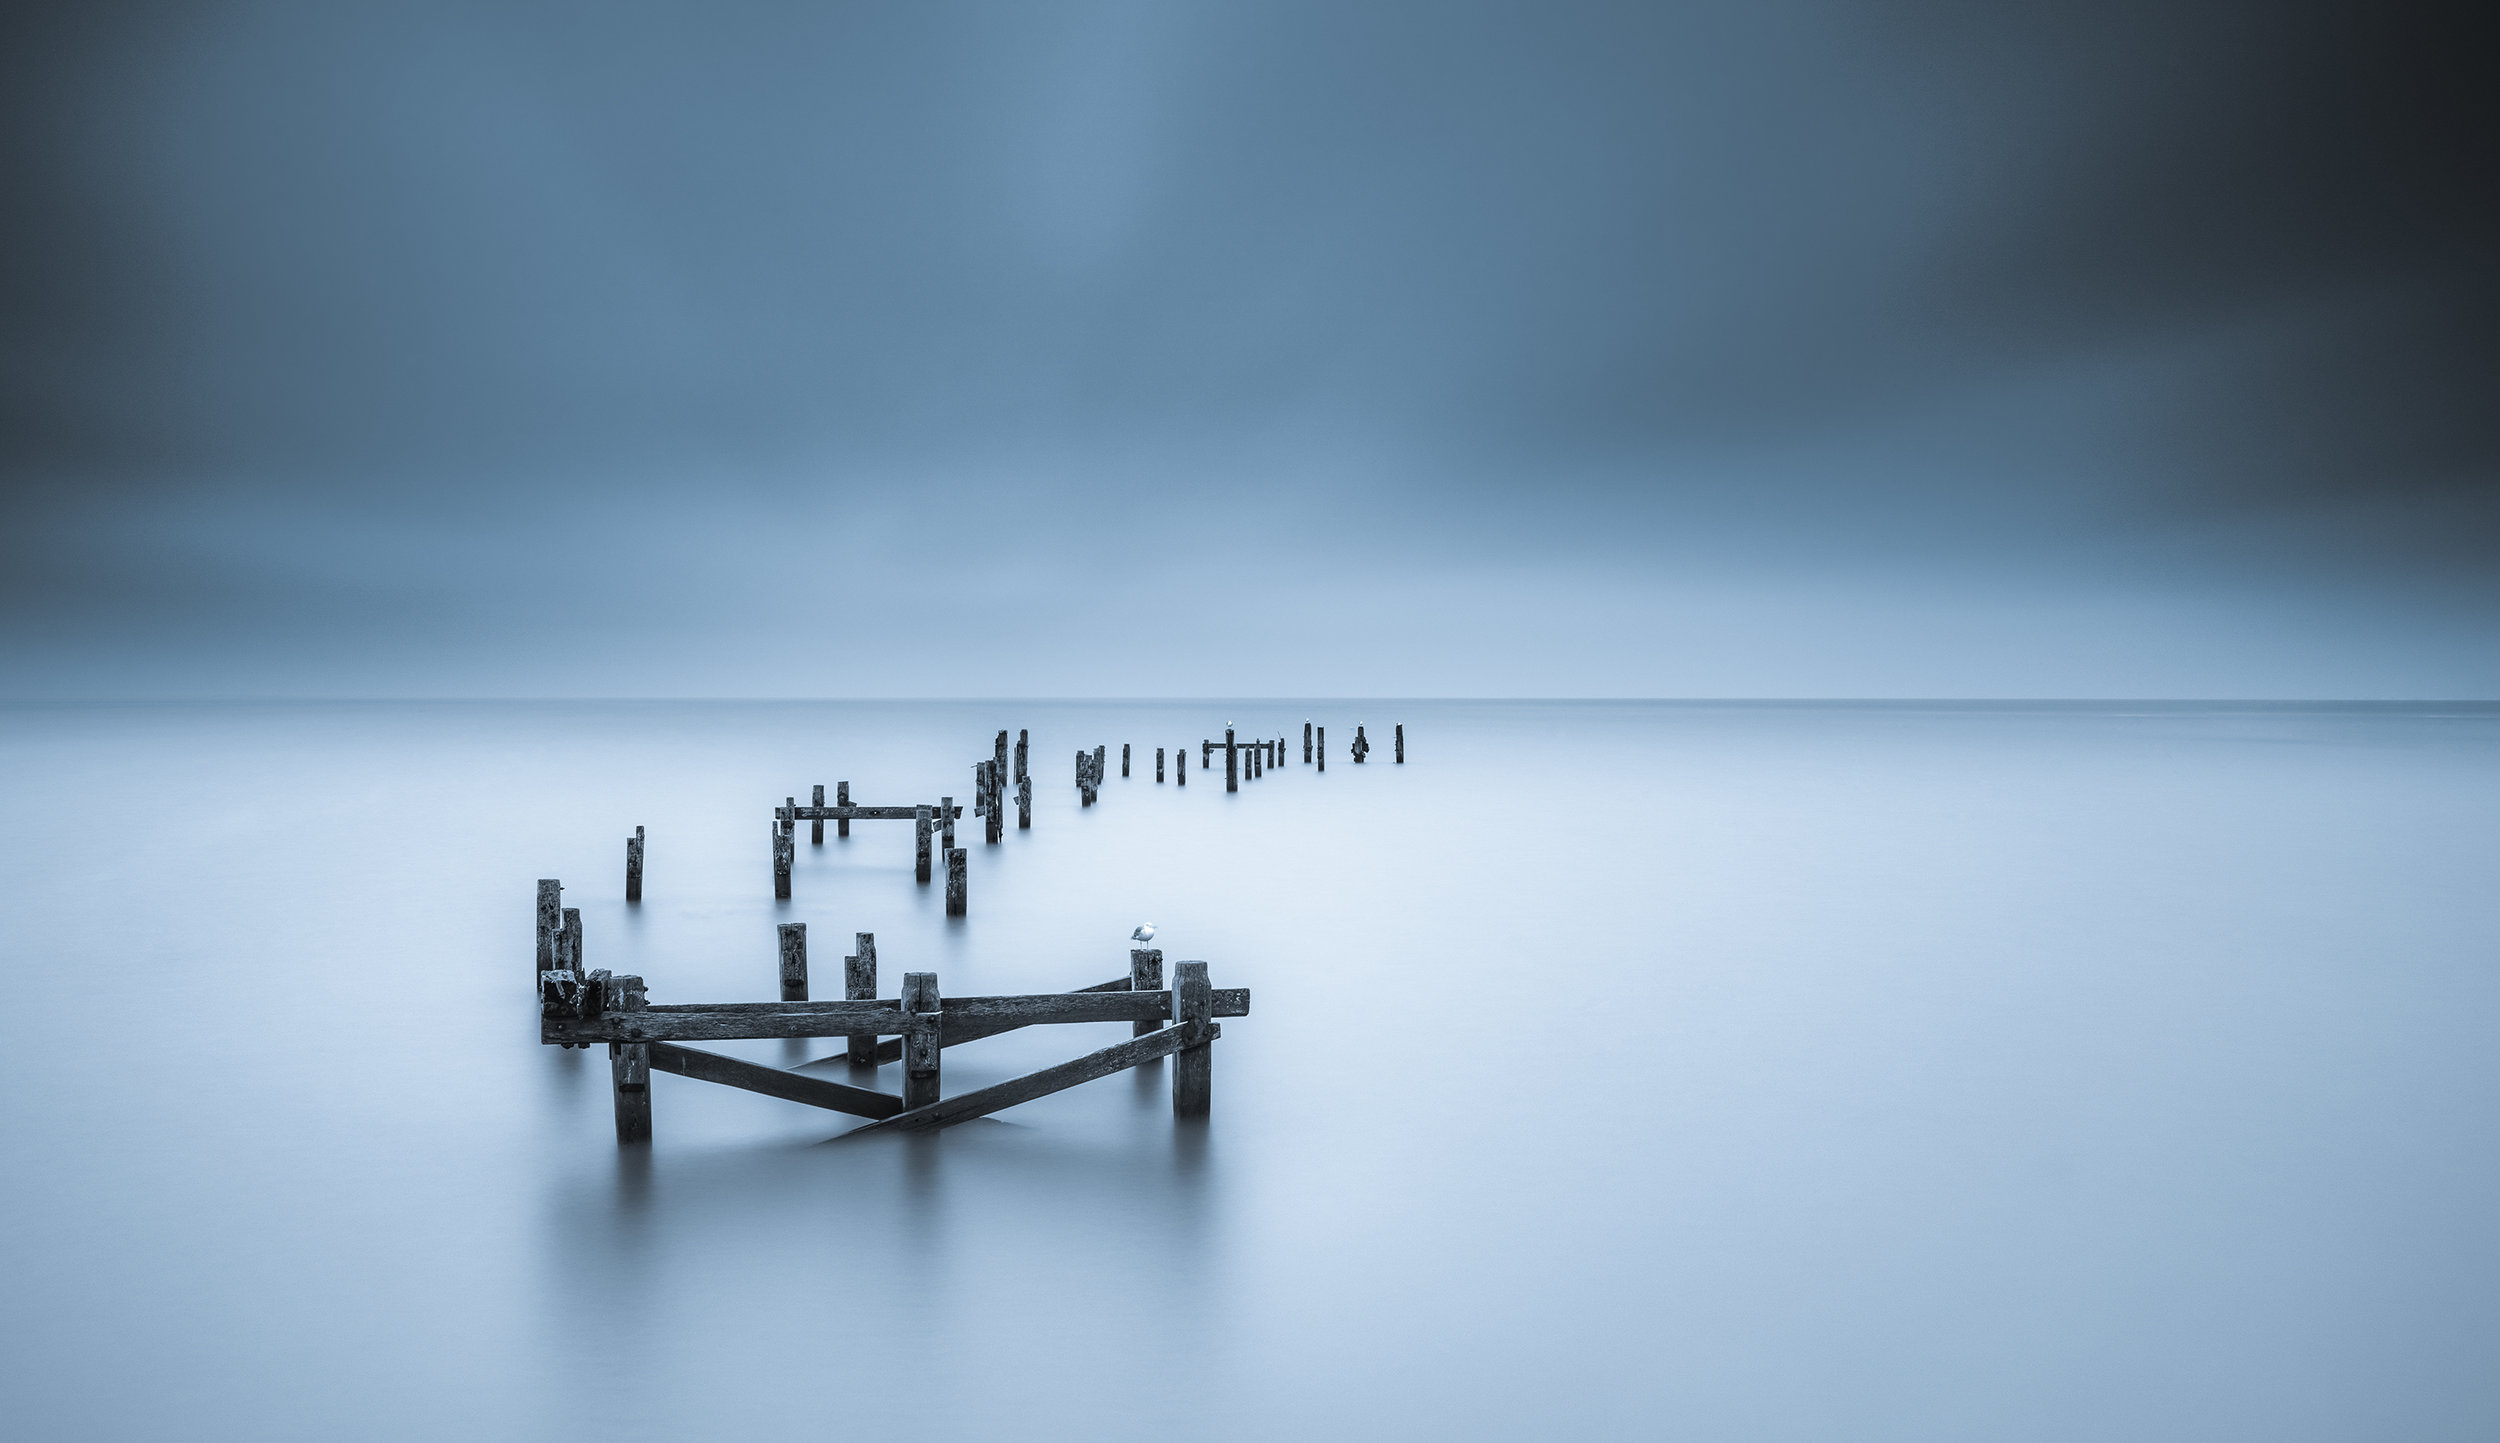 92 seconds - Swanage Old Pier, Dorset